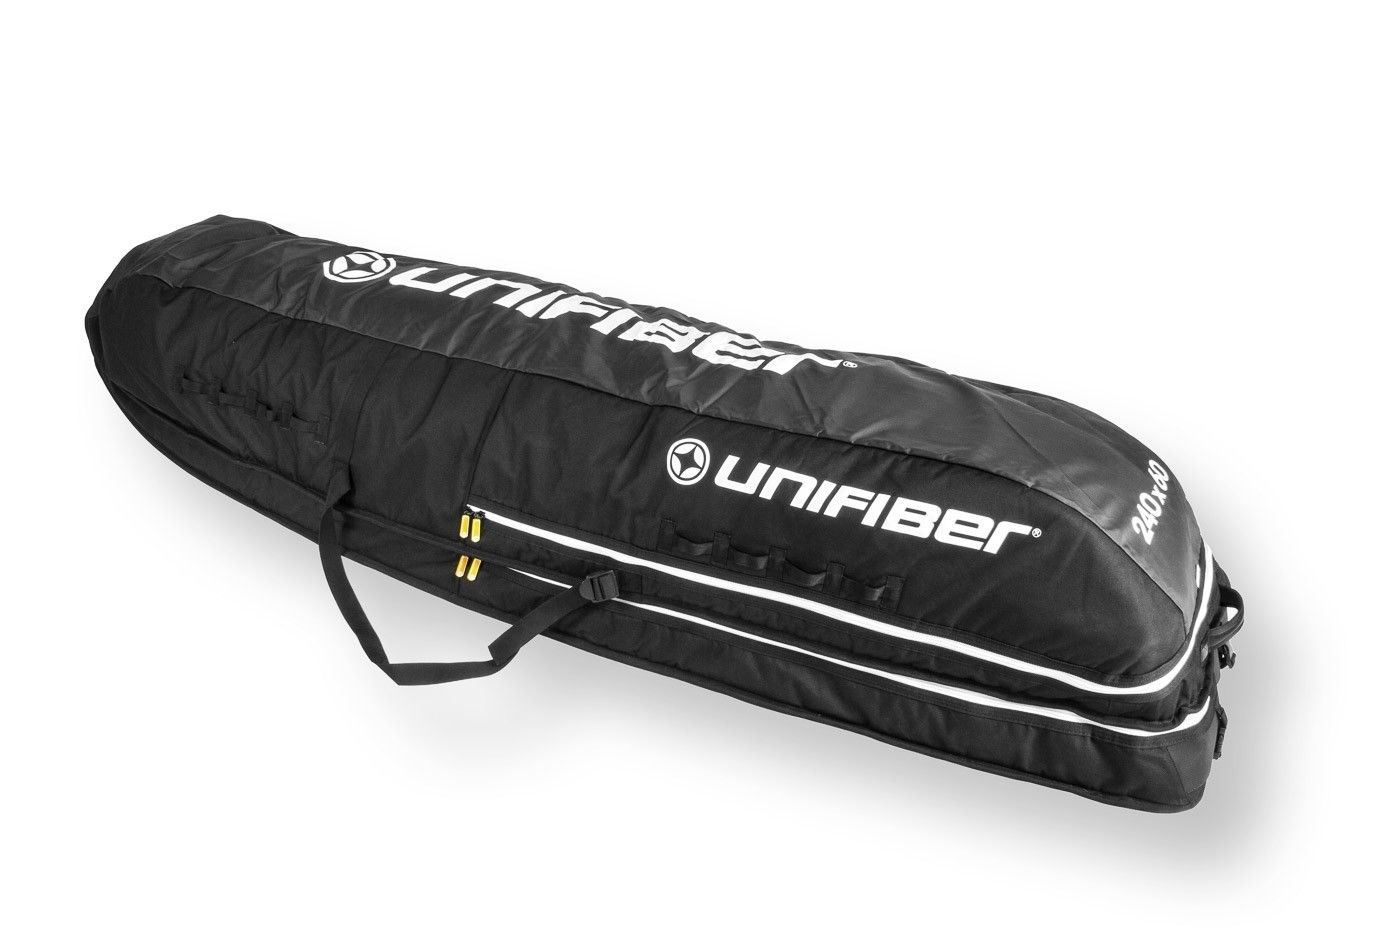 Unifiber Roofrack Board Quiverbag